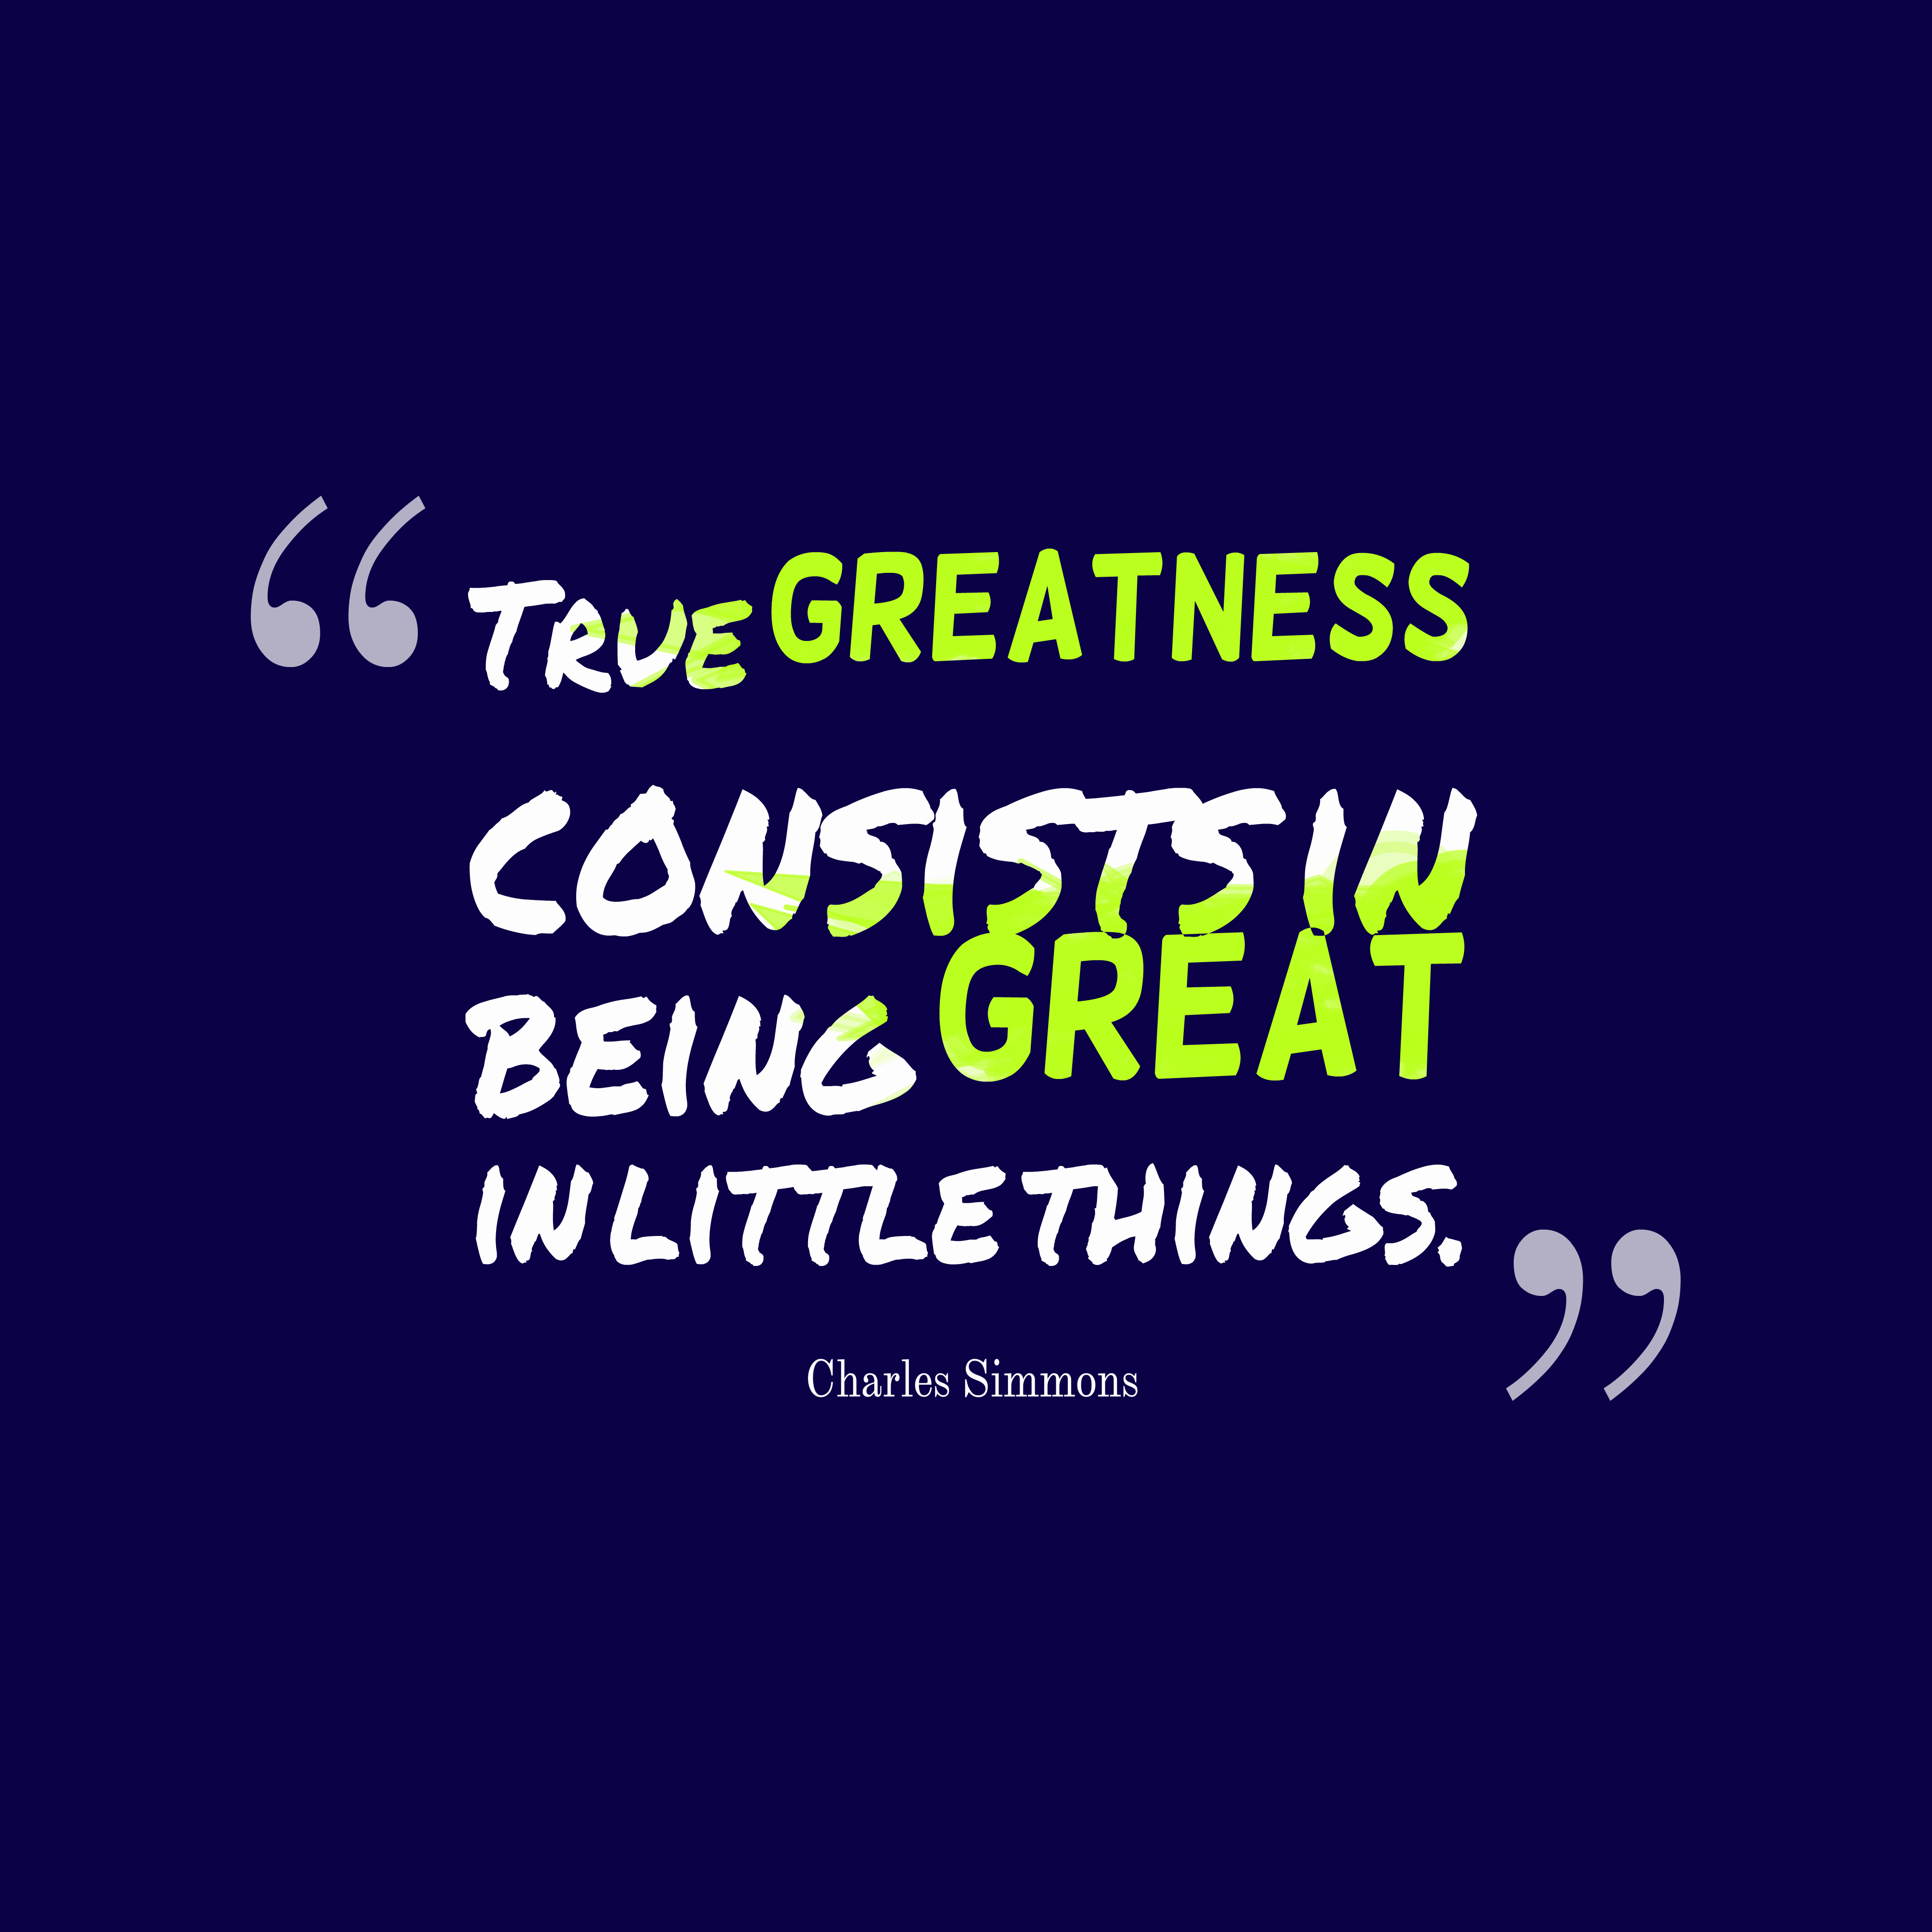 Nike Quotes Greatness TRUE GREATNESS QUOTES